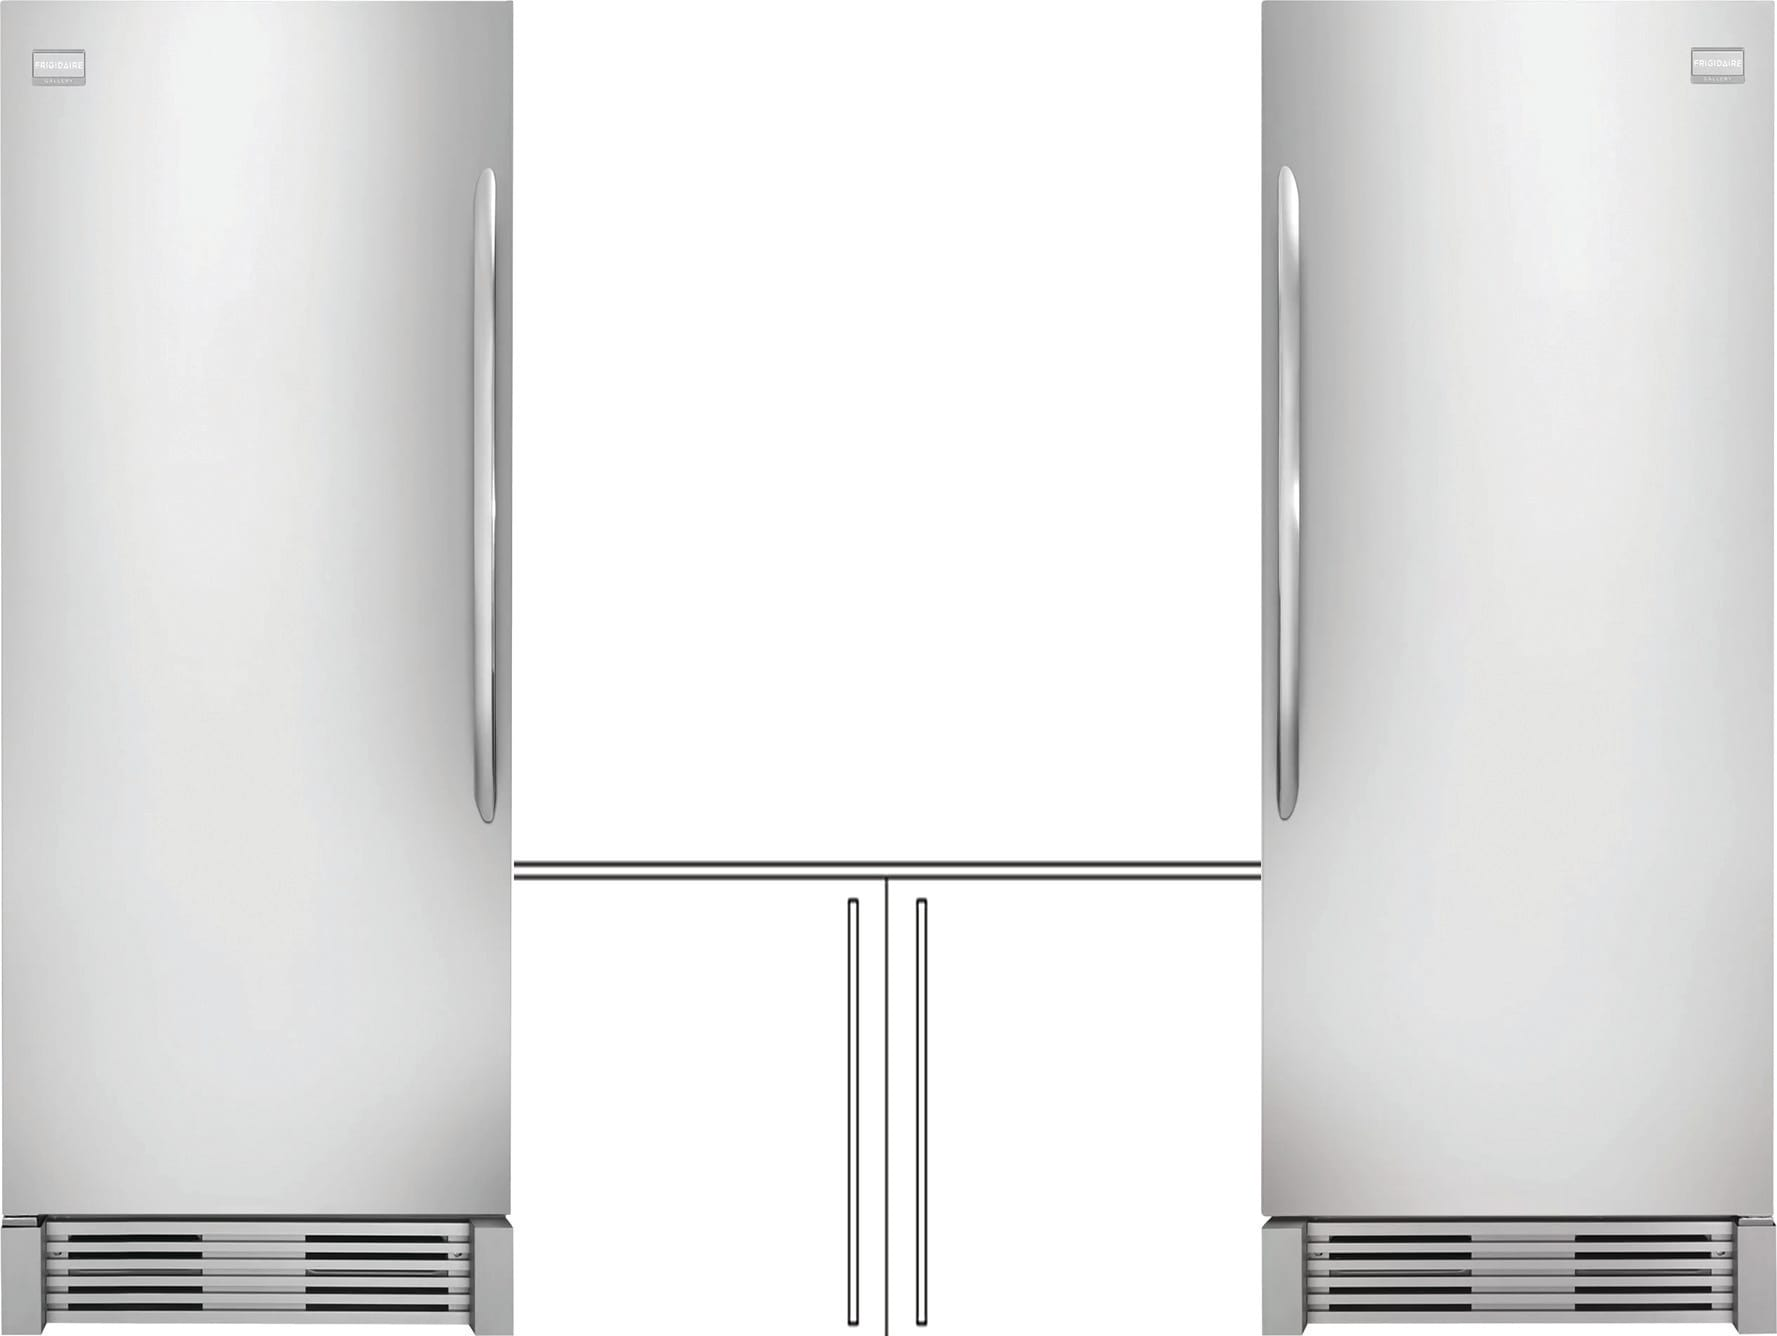 frigidaire professional series dishwasher installation instructions